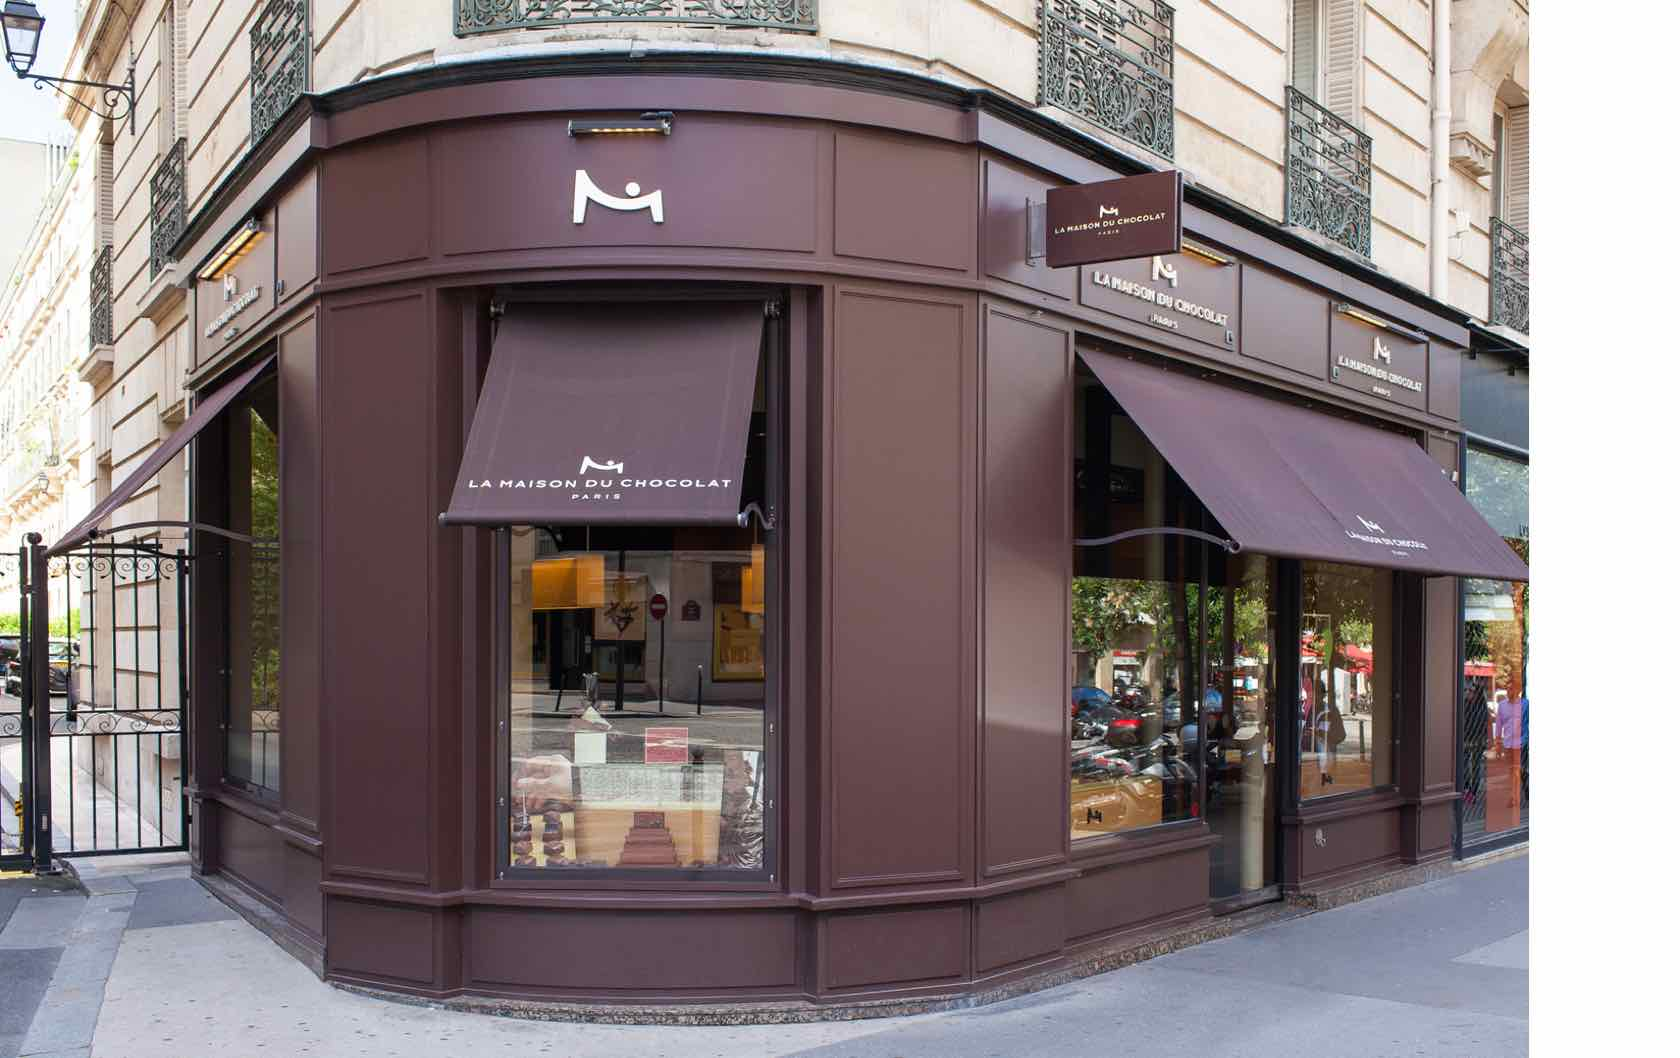 Maison Du Monde Marais Sweet Dreams Are Made Of These 8 Great Chocolate Shops In